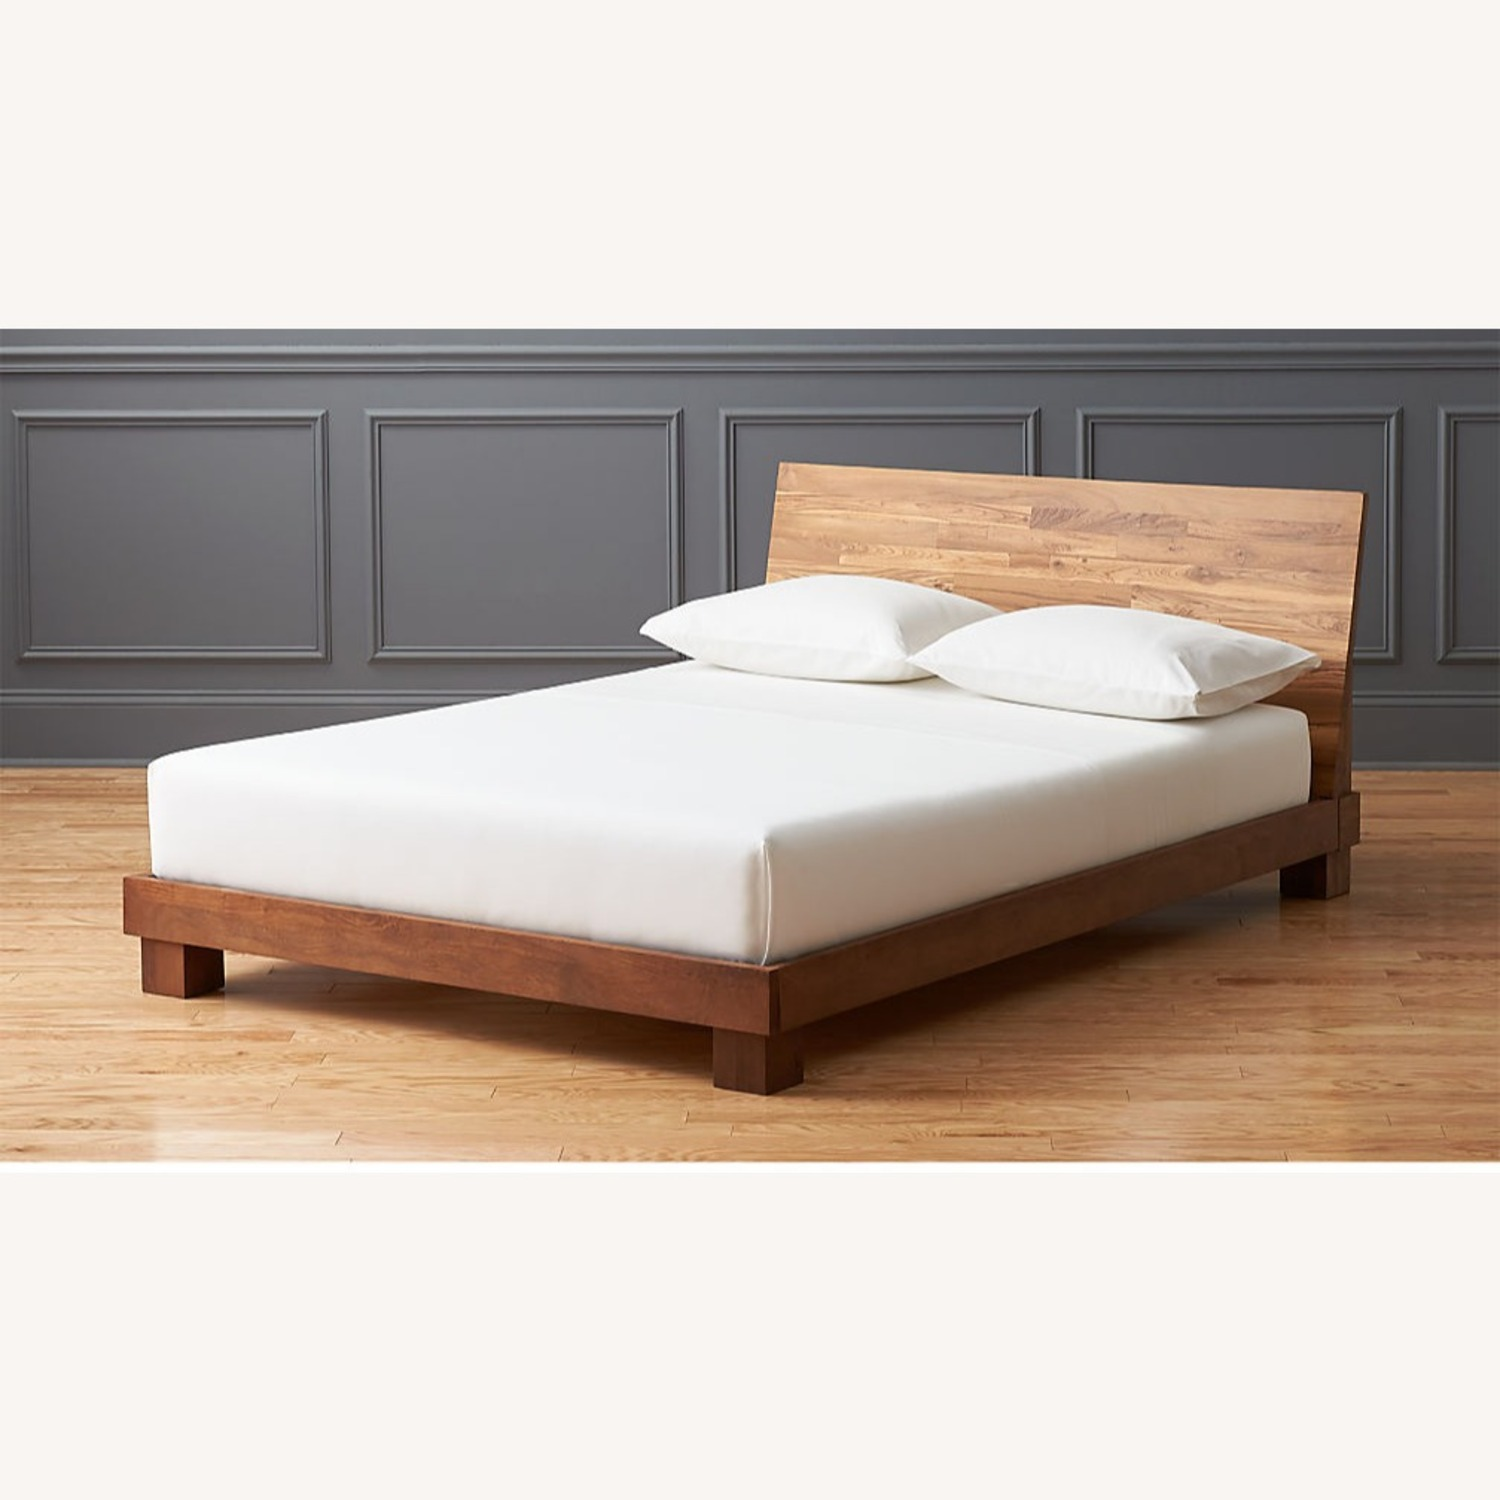 CB2 Dondra Teak Full Bed - image-3